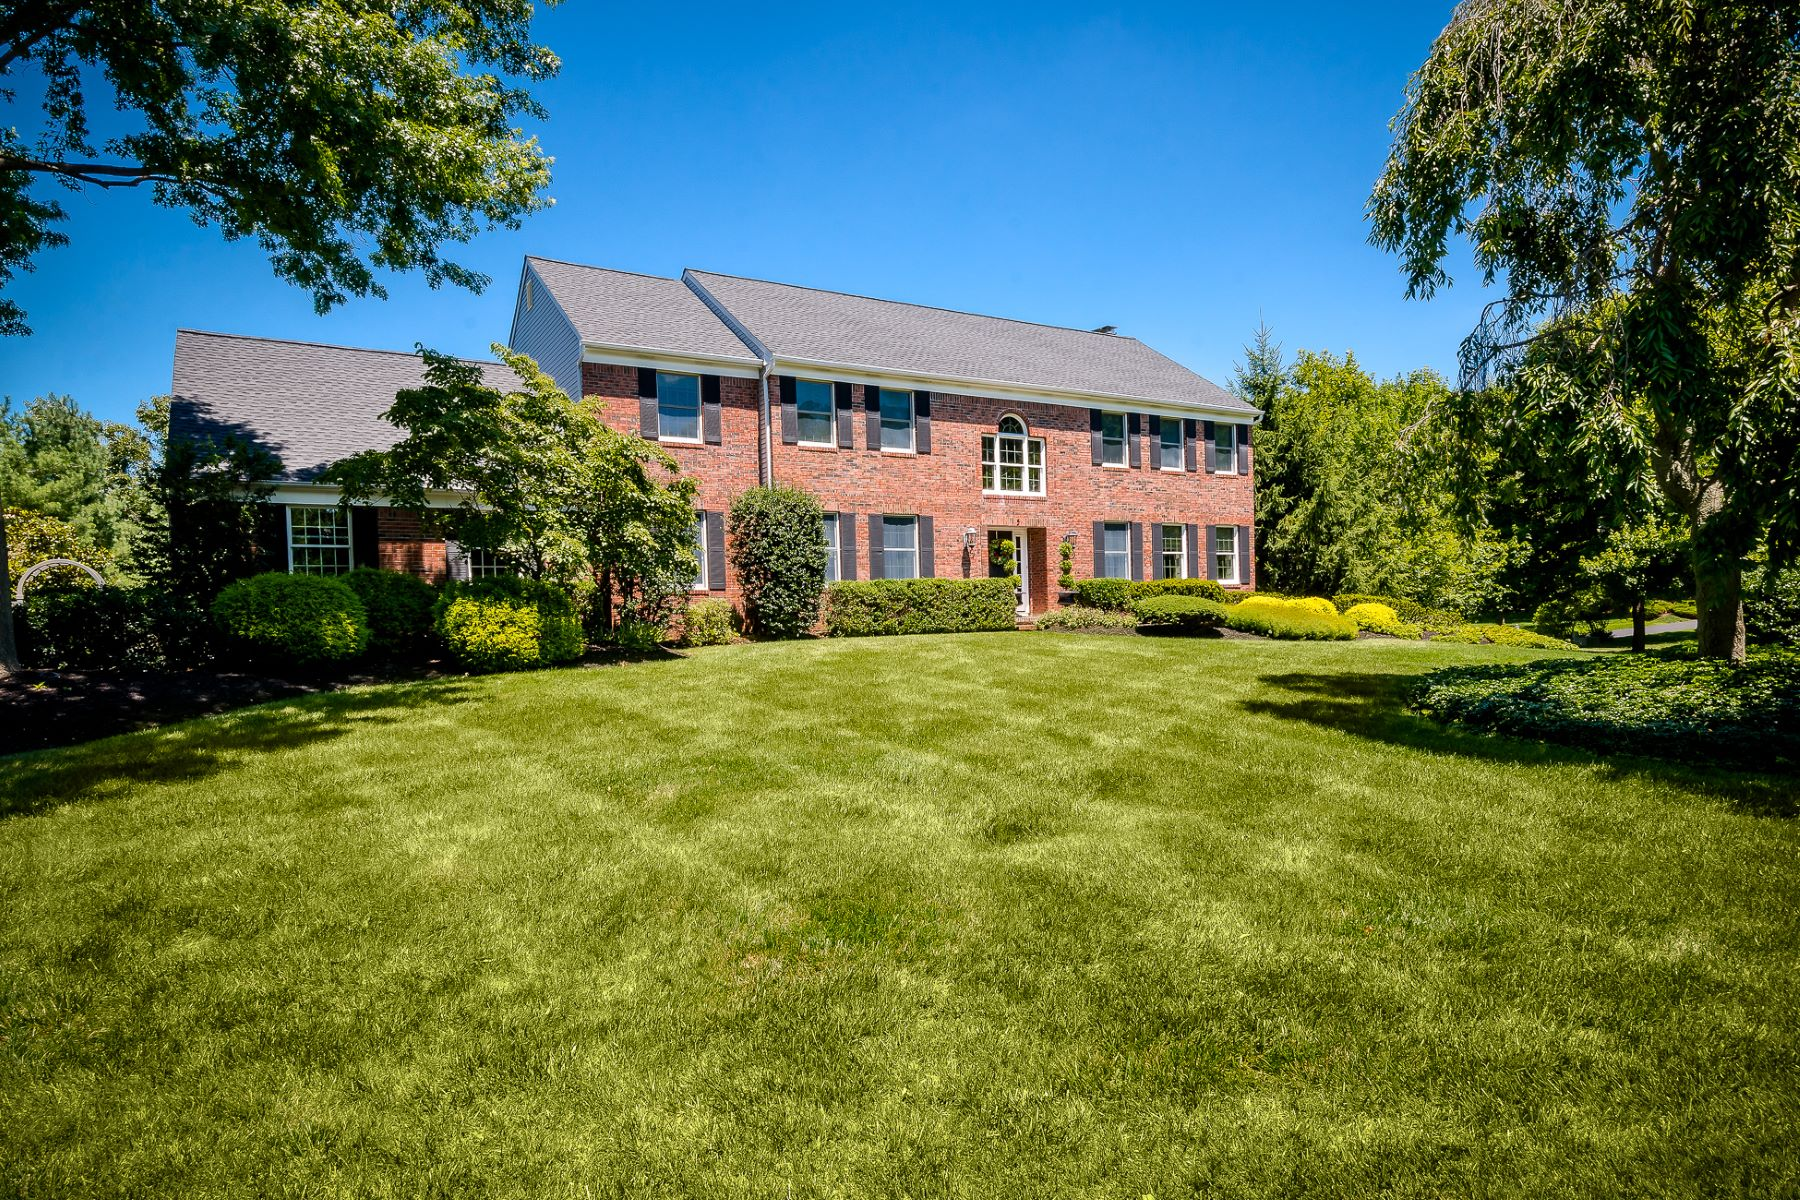 Maison unifamiliale pour l Vente à Brick Colonial In Princeton Oaks 5 Cliffview Court, West Windsor, New Jersey 08550 États-UnisDans/Autour: West Windsor Twp